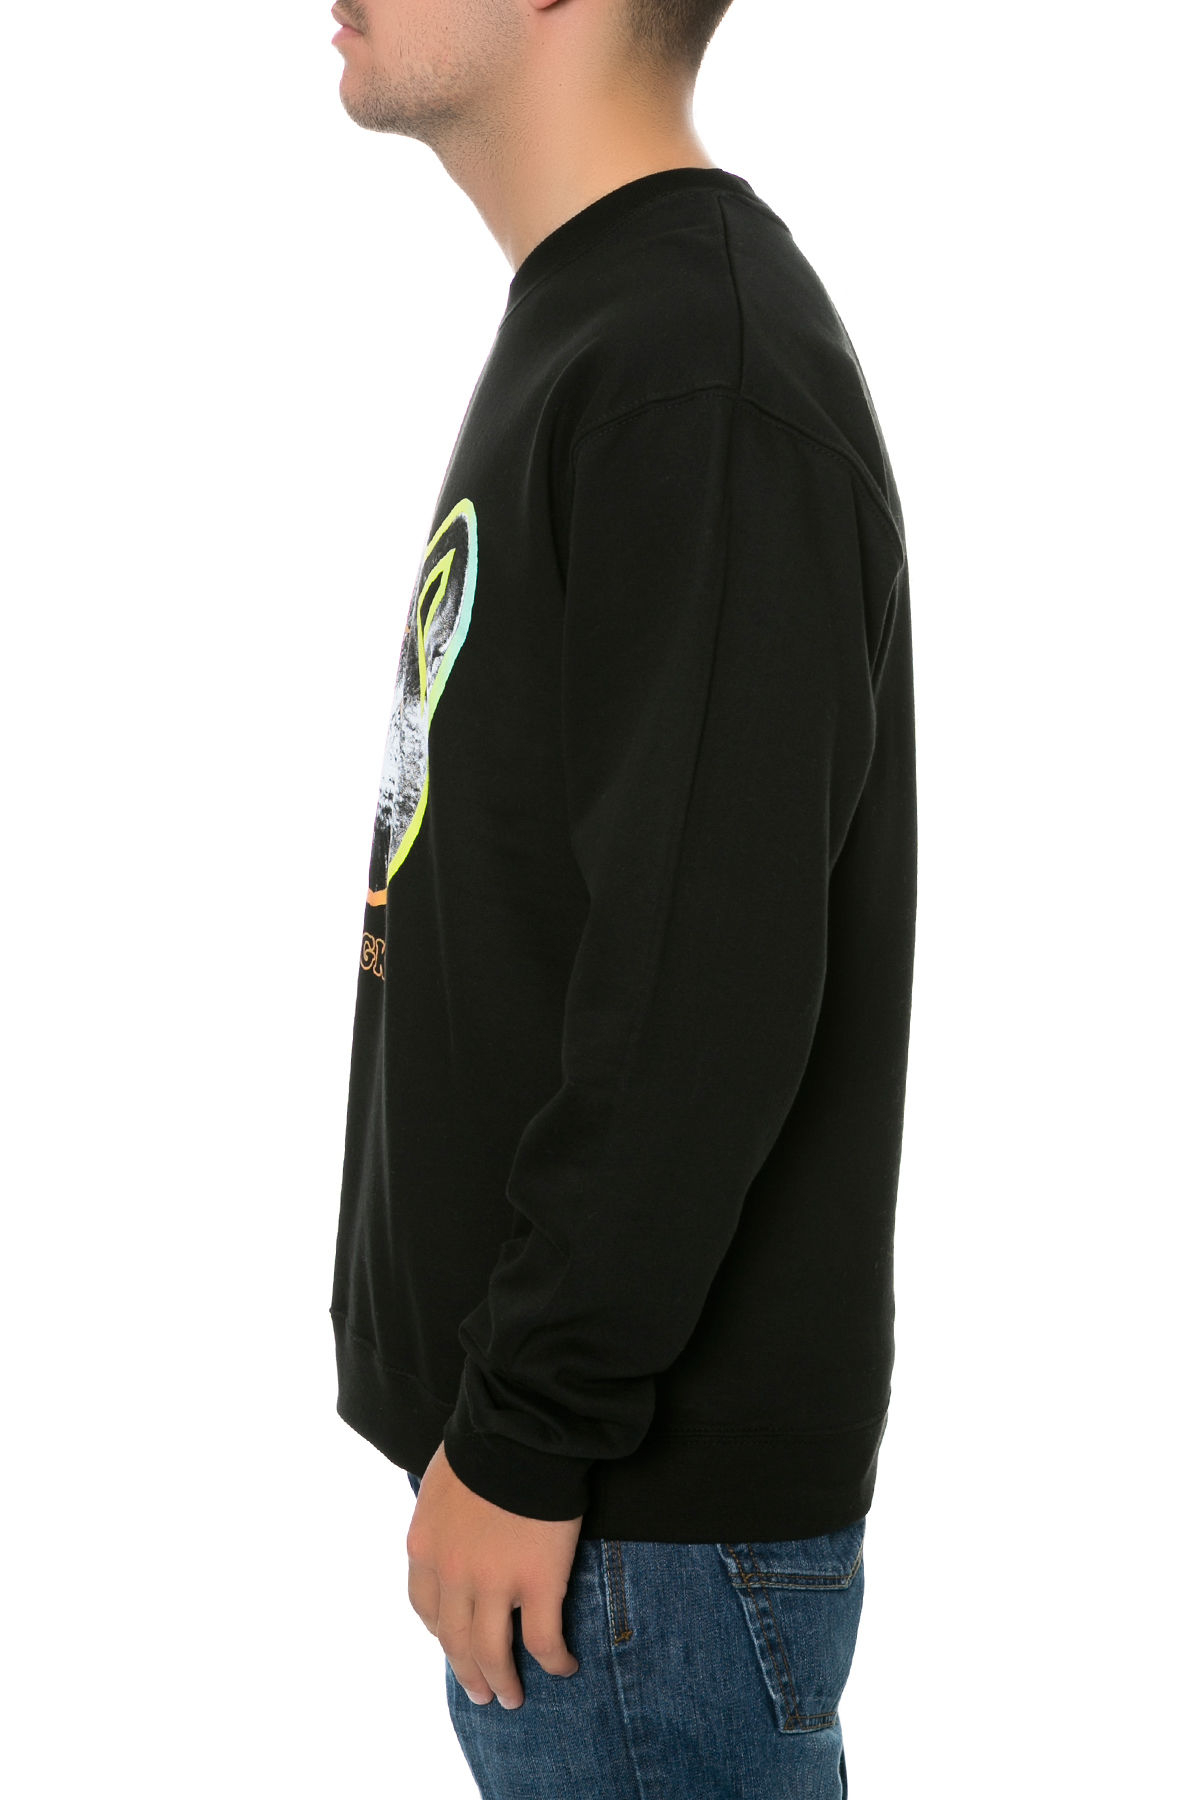 4899a2d5fbca Lyst - Odd Future The Ofwgkta Tron Cat Sweatshirt in Black for Men